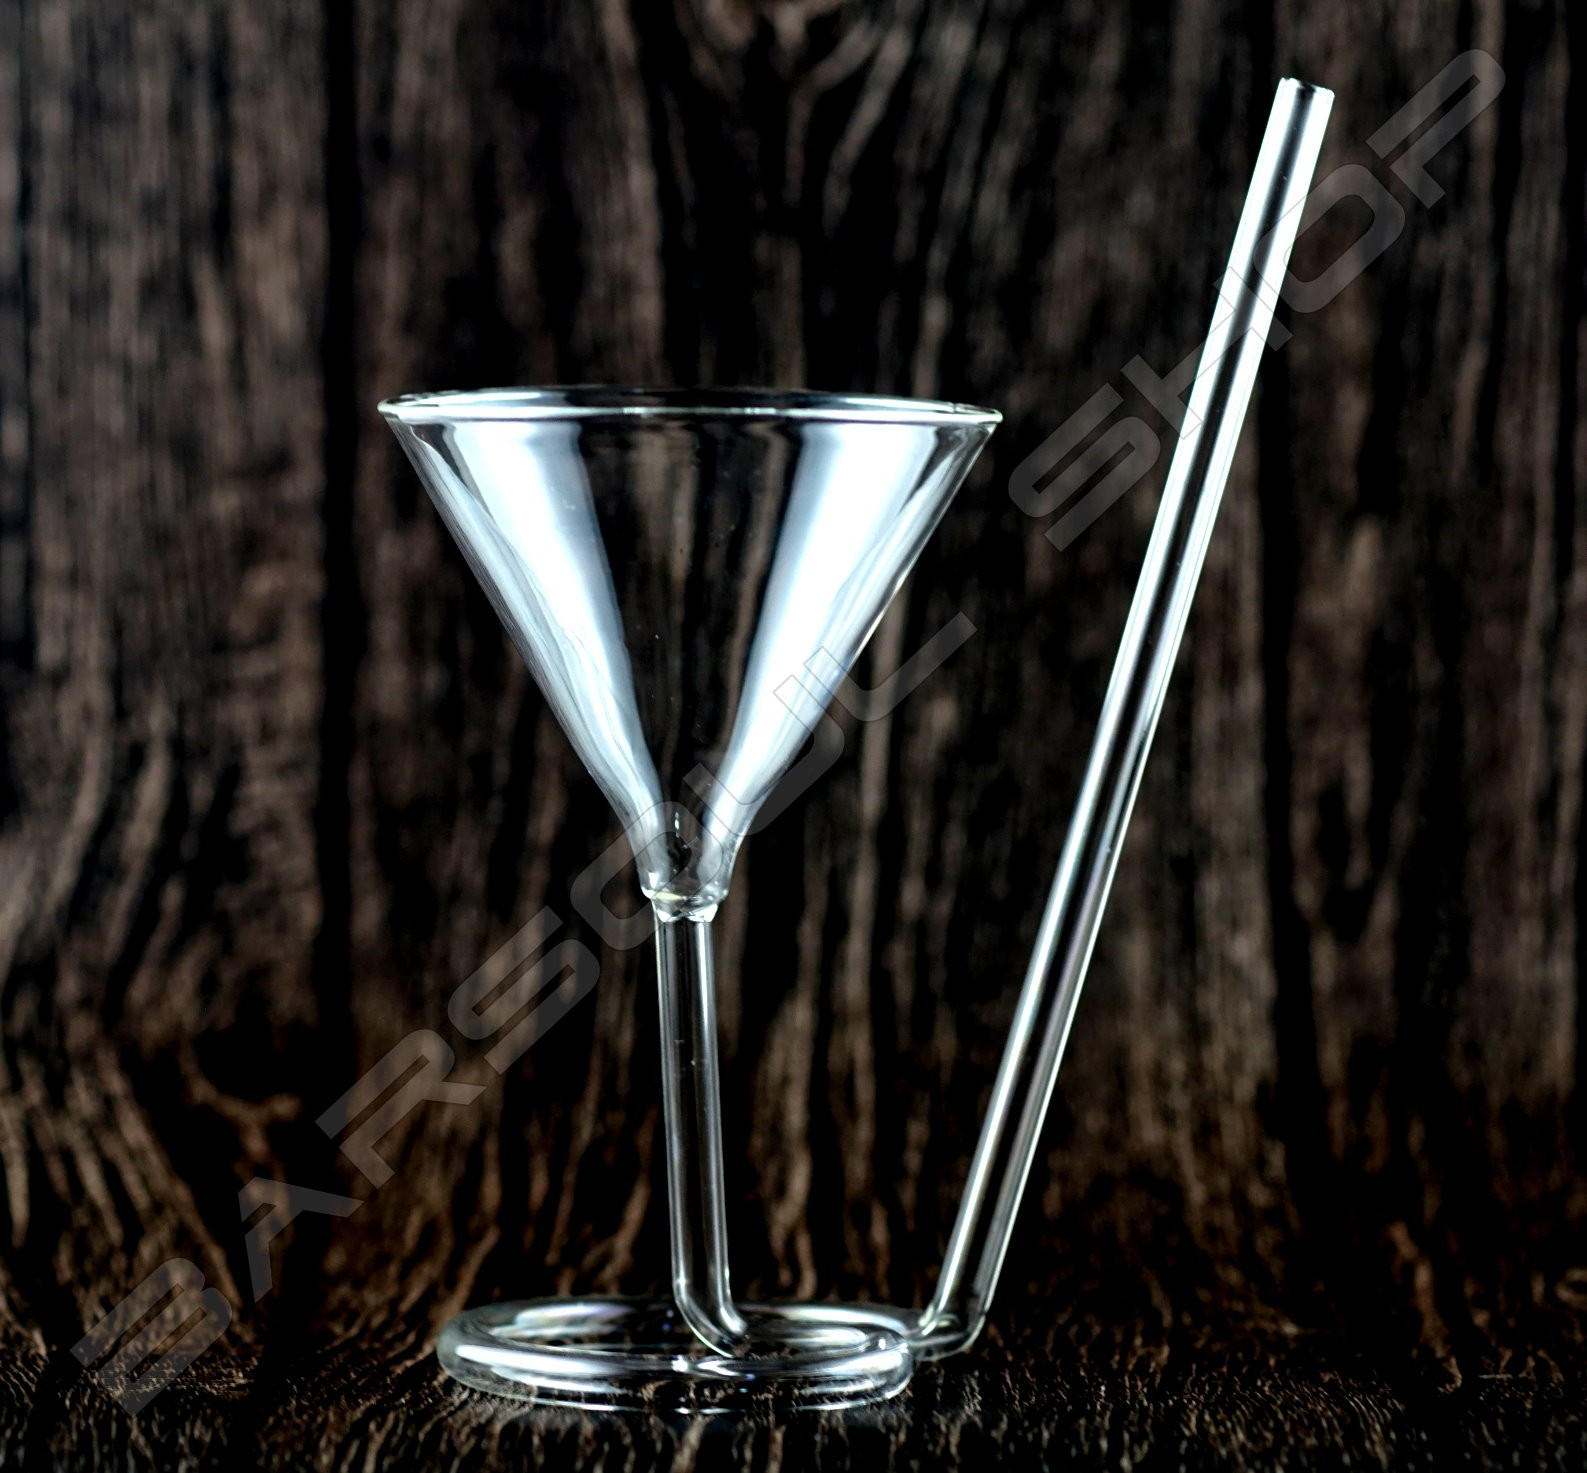 吸管旋轉造型杯118ml Pipette rotate glass